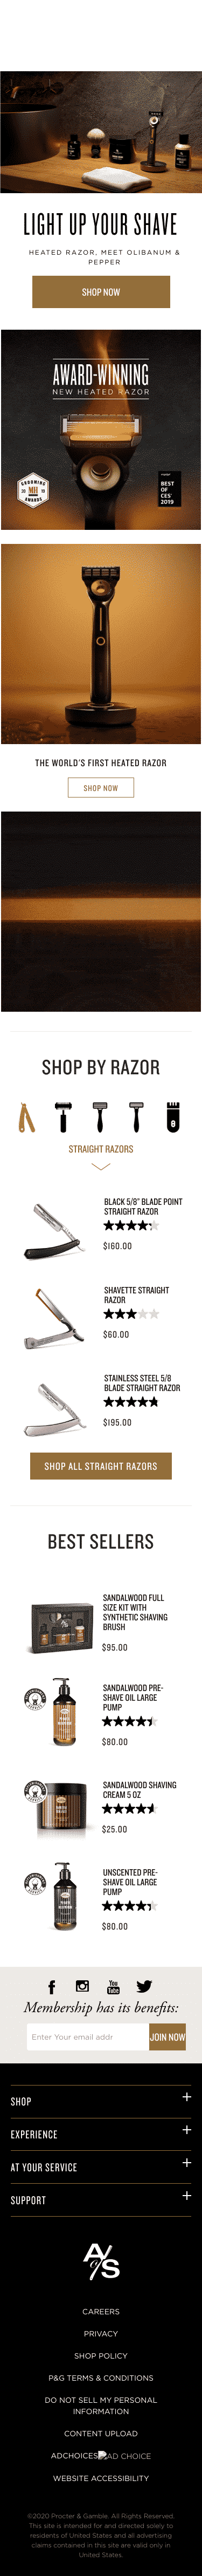 The Art of Shaving Coupon